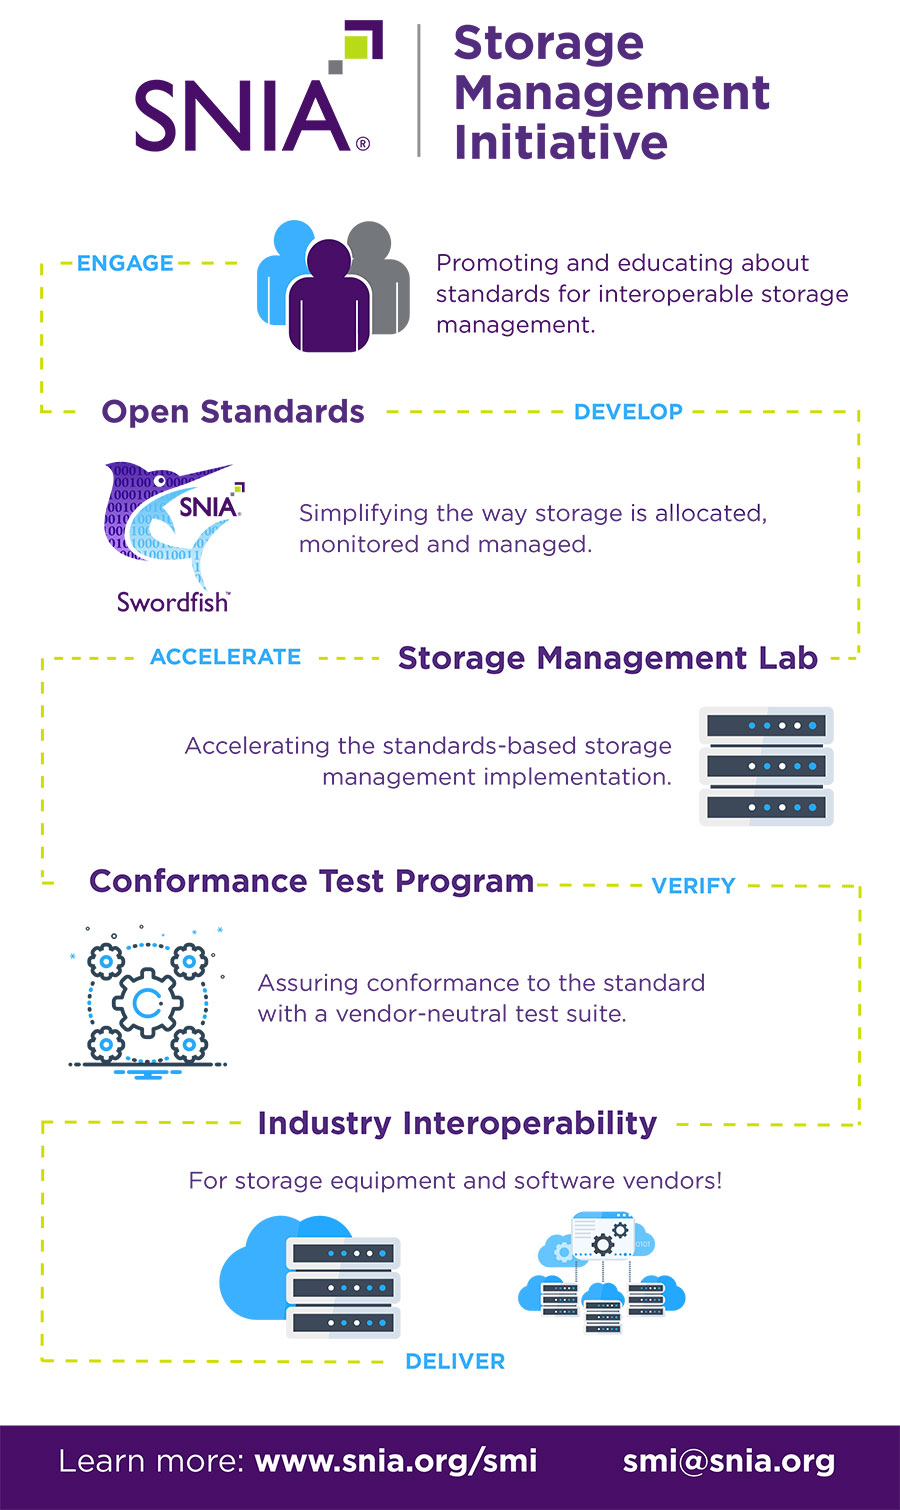 SNIA Storage Management Initiative